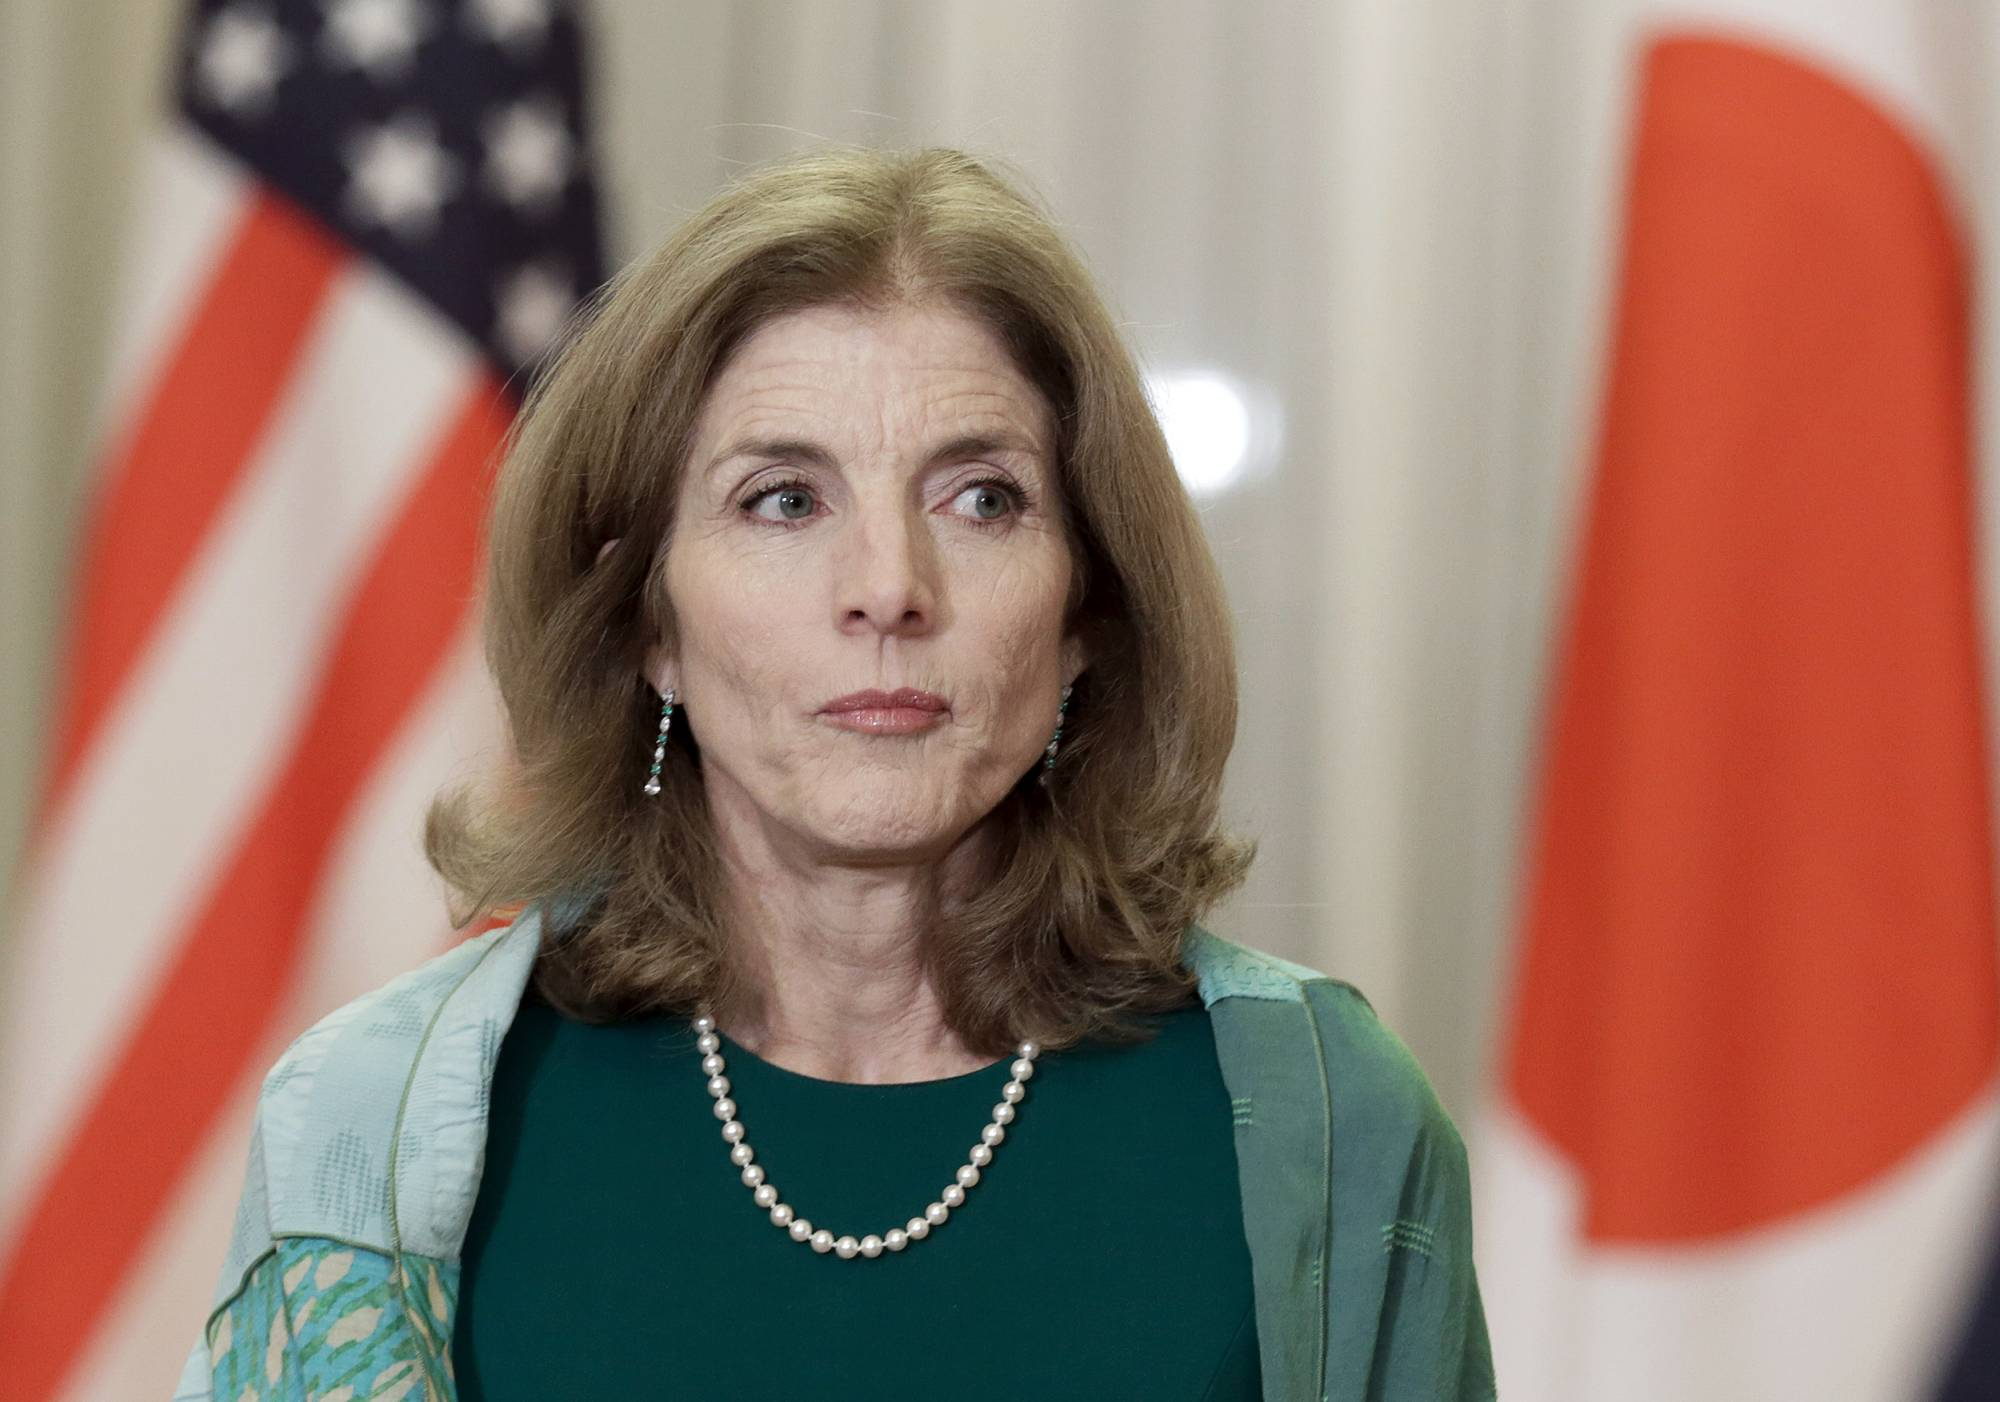 Caroline Kennedy, appointed by U.S. President Barack Obama, served as ambassador to Japan from 2013 to 2017. | POOL / VIA REUTERS